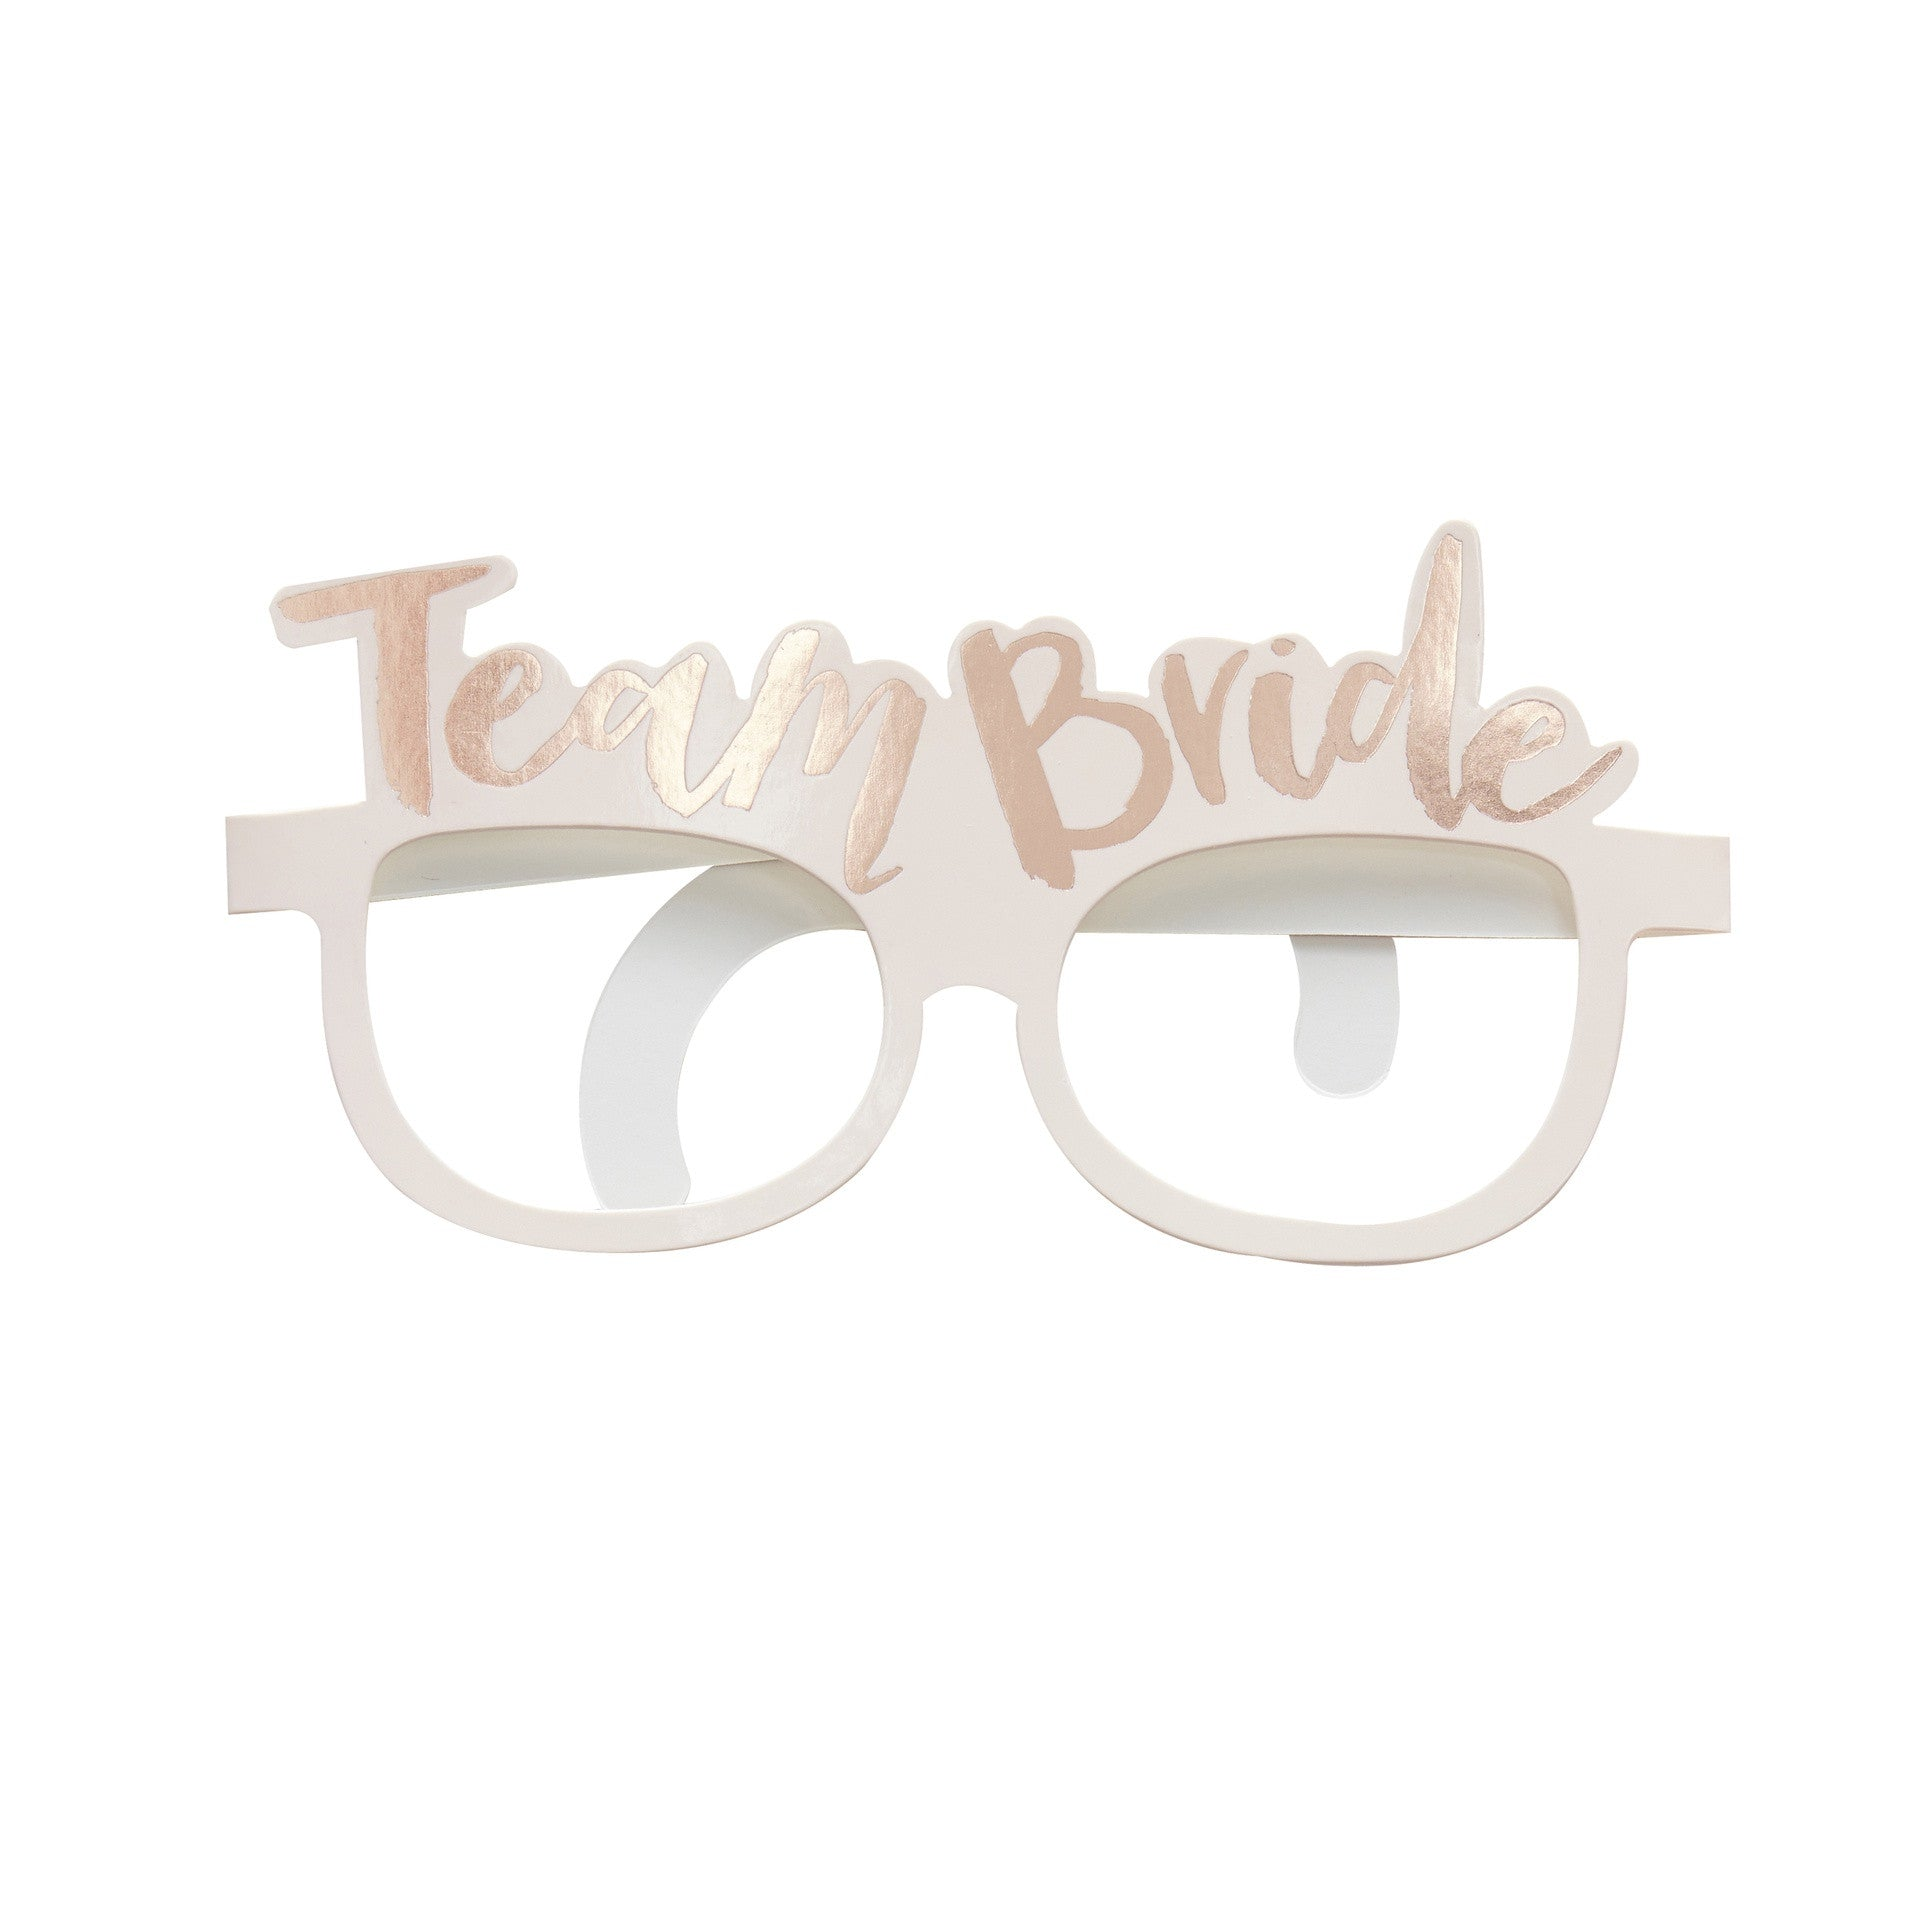 TEAM BRIDE GLASSES from Pop Cloud Bristol who offer a huge range of fancy dress costumes and partyware items